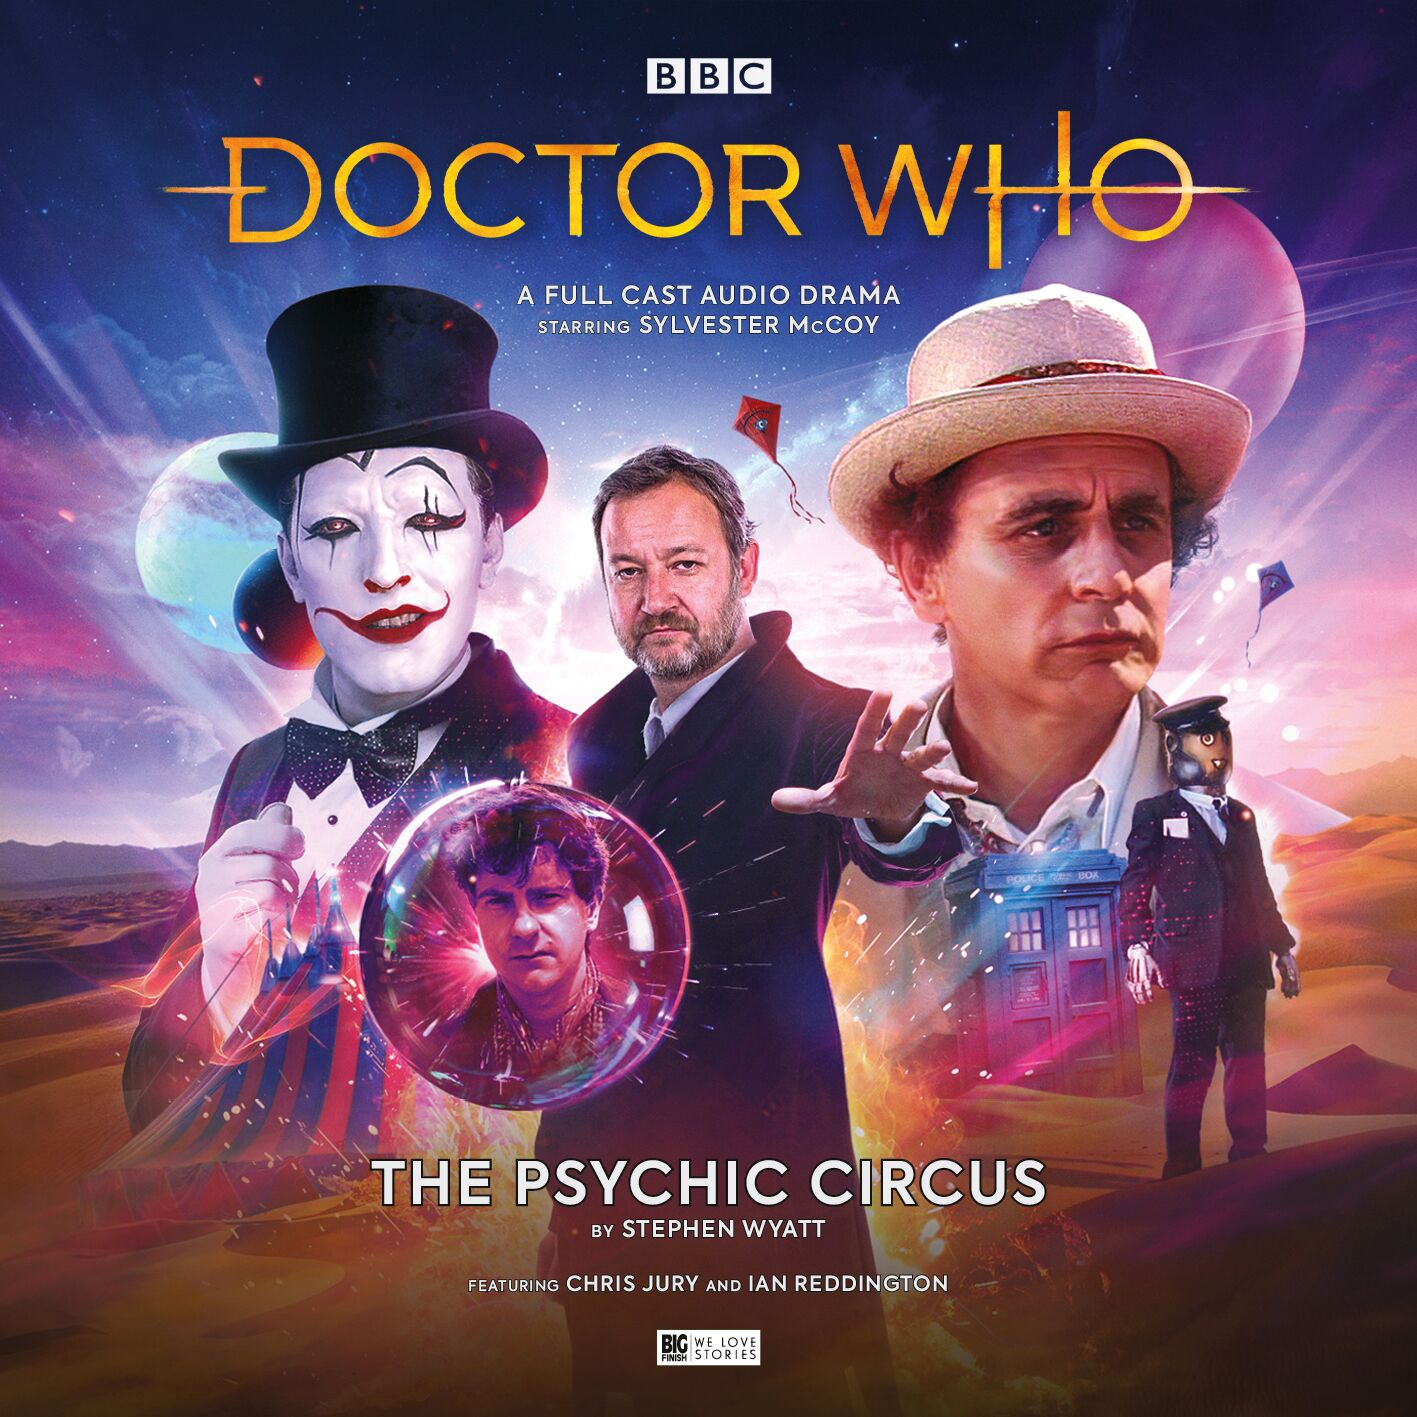 Doctor Who review: The Psychic Circus is an excellent prequel/sequel story